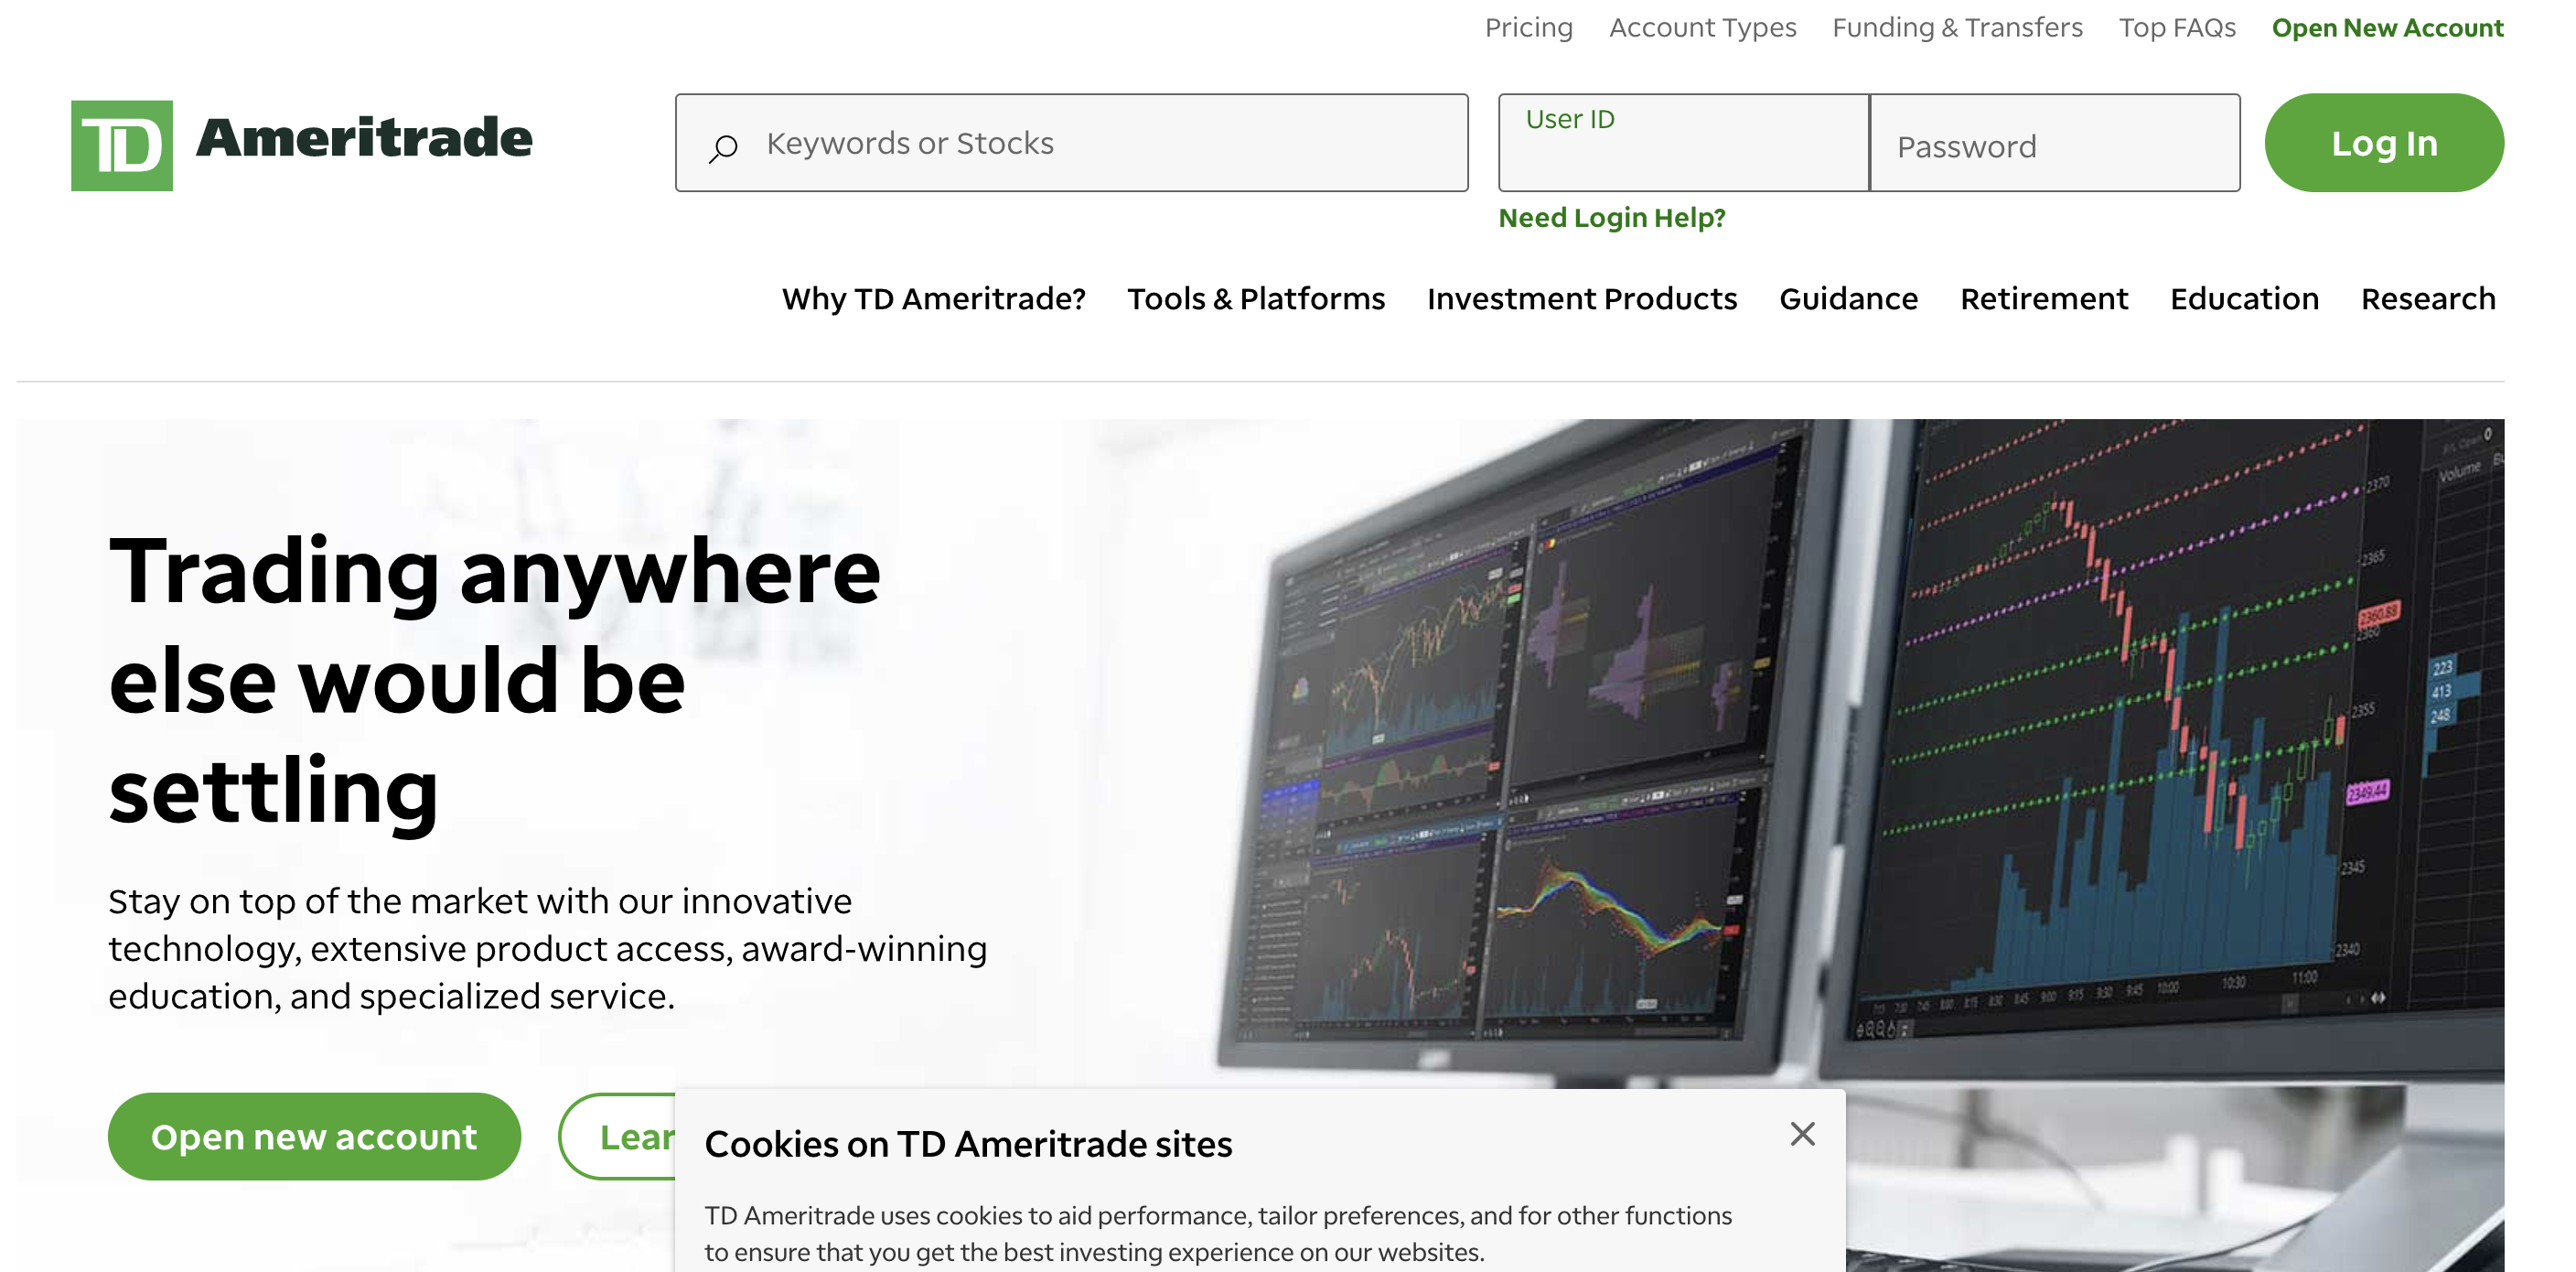 TD Ameritrade Login – How to Sign up Account Online